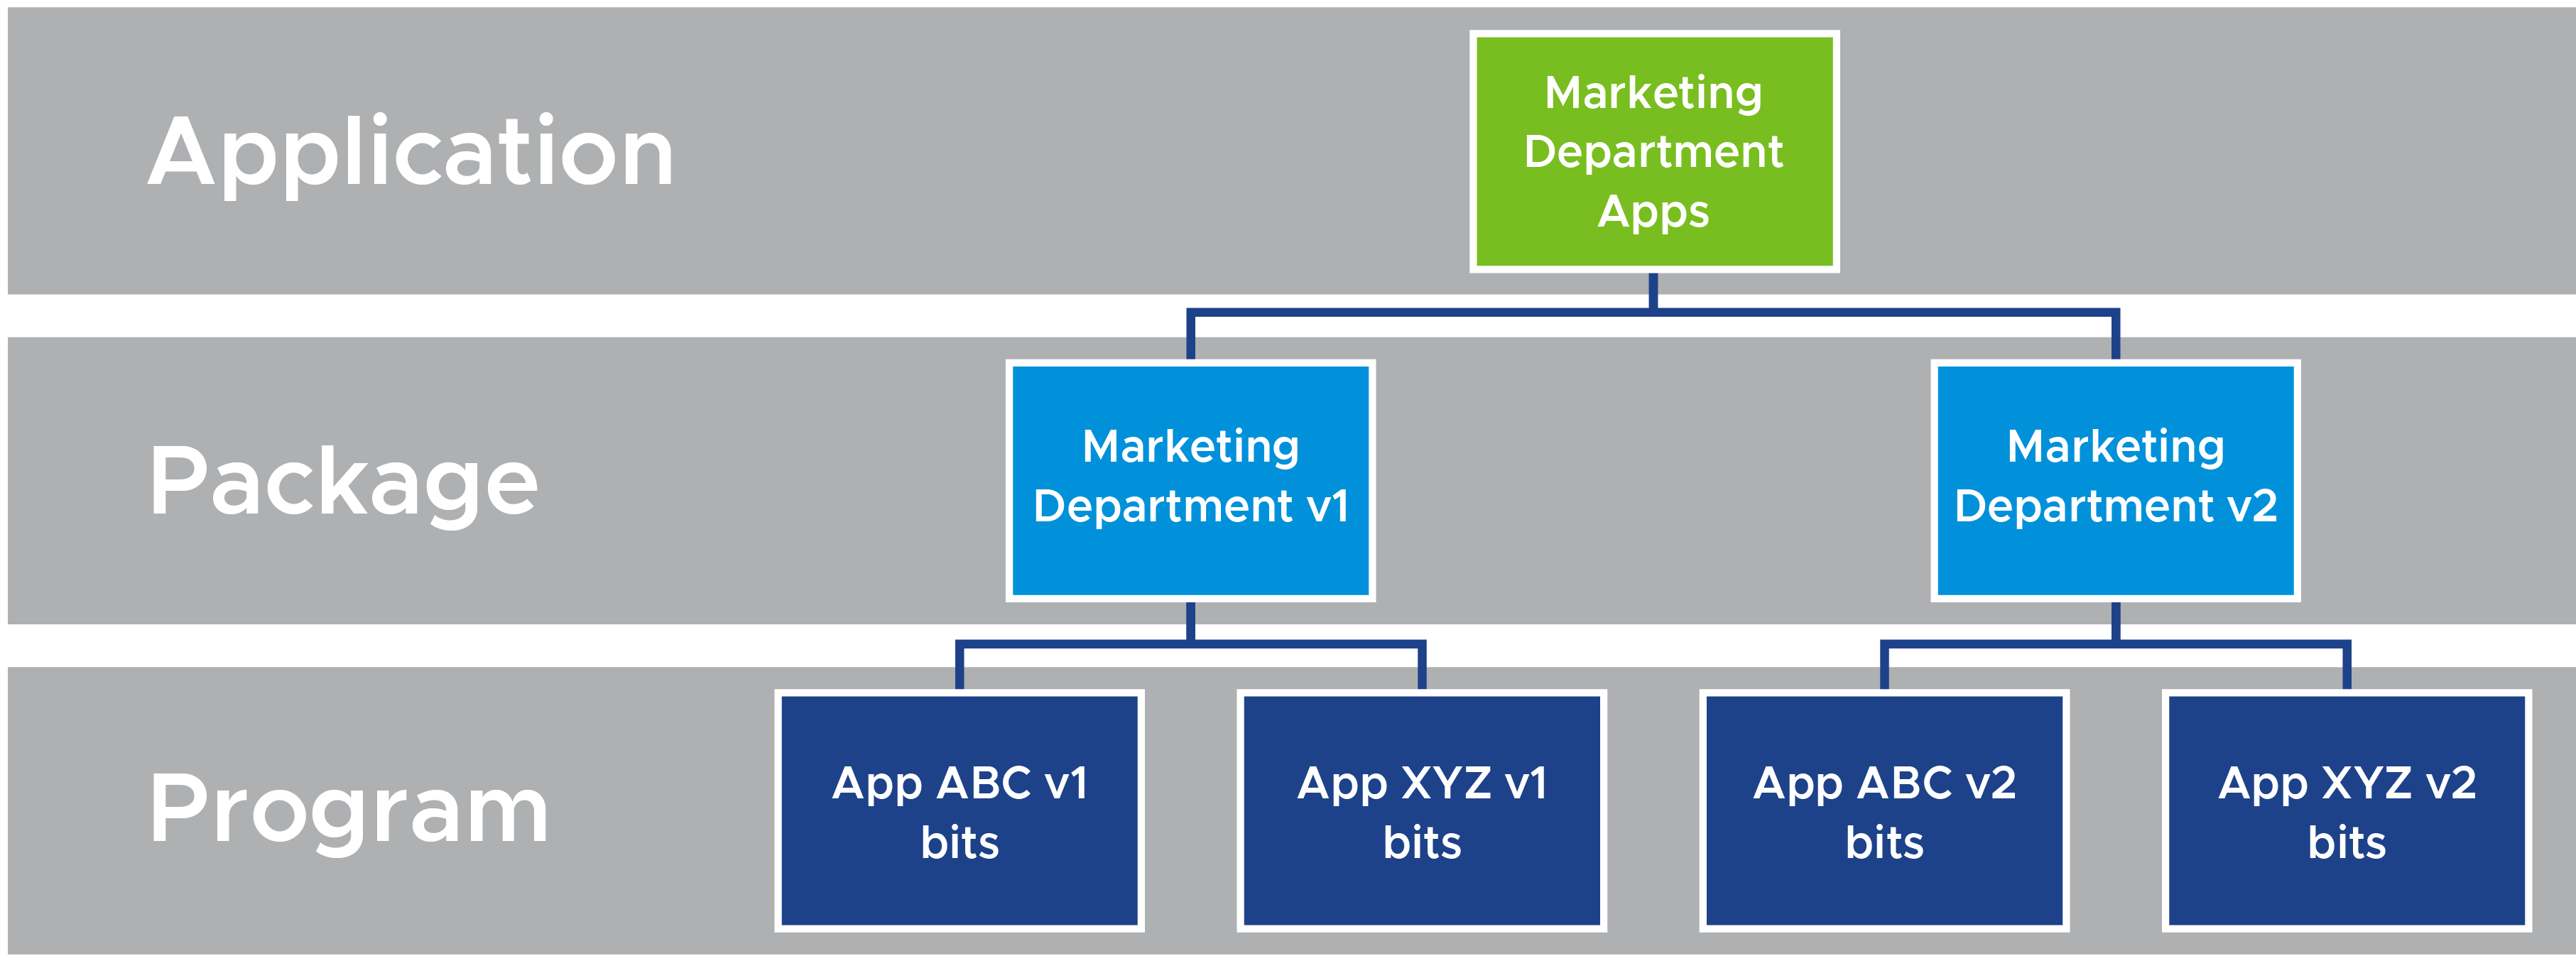 Logical Diagram of Application That Includes Program Bits for Multiple Applications and Versions